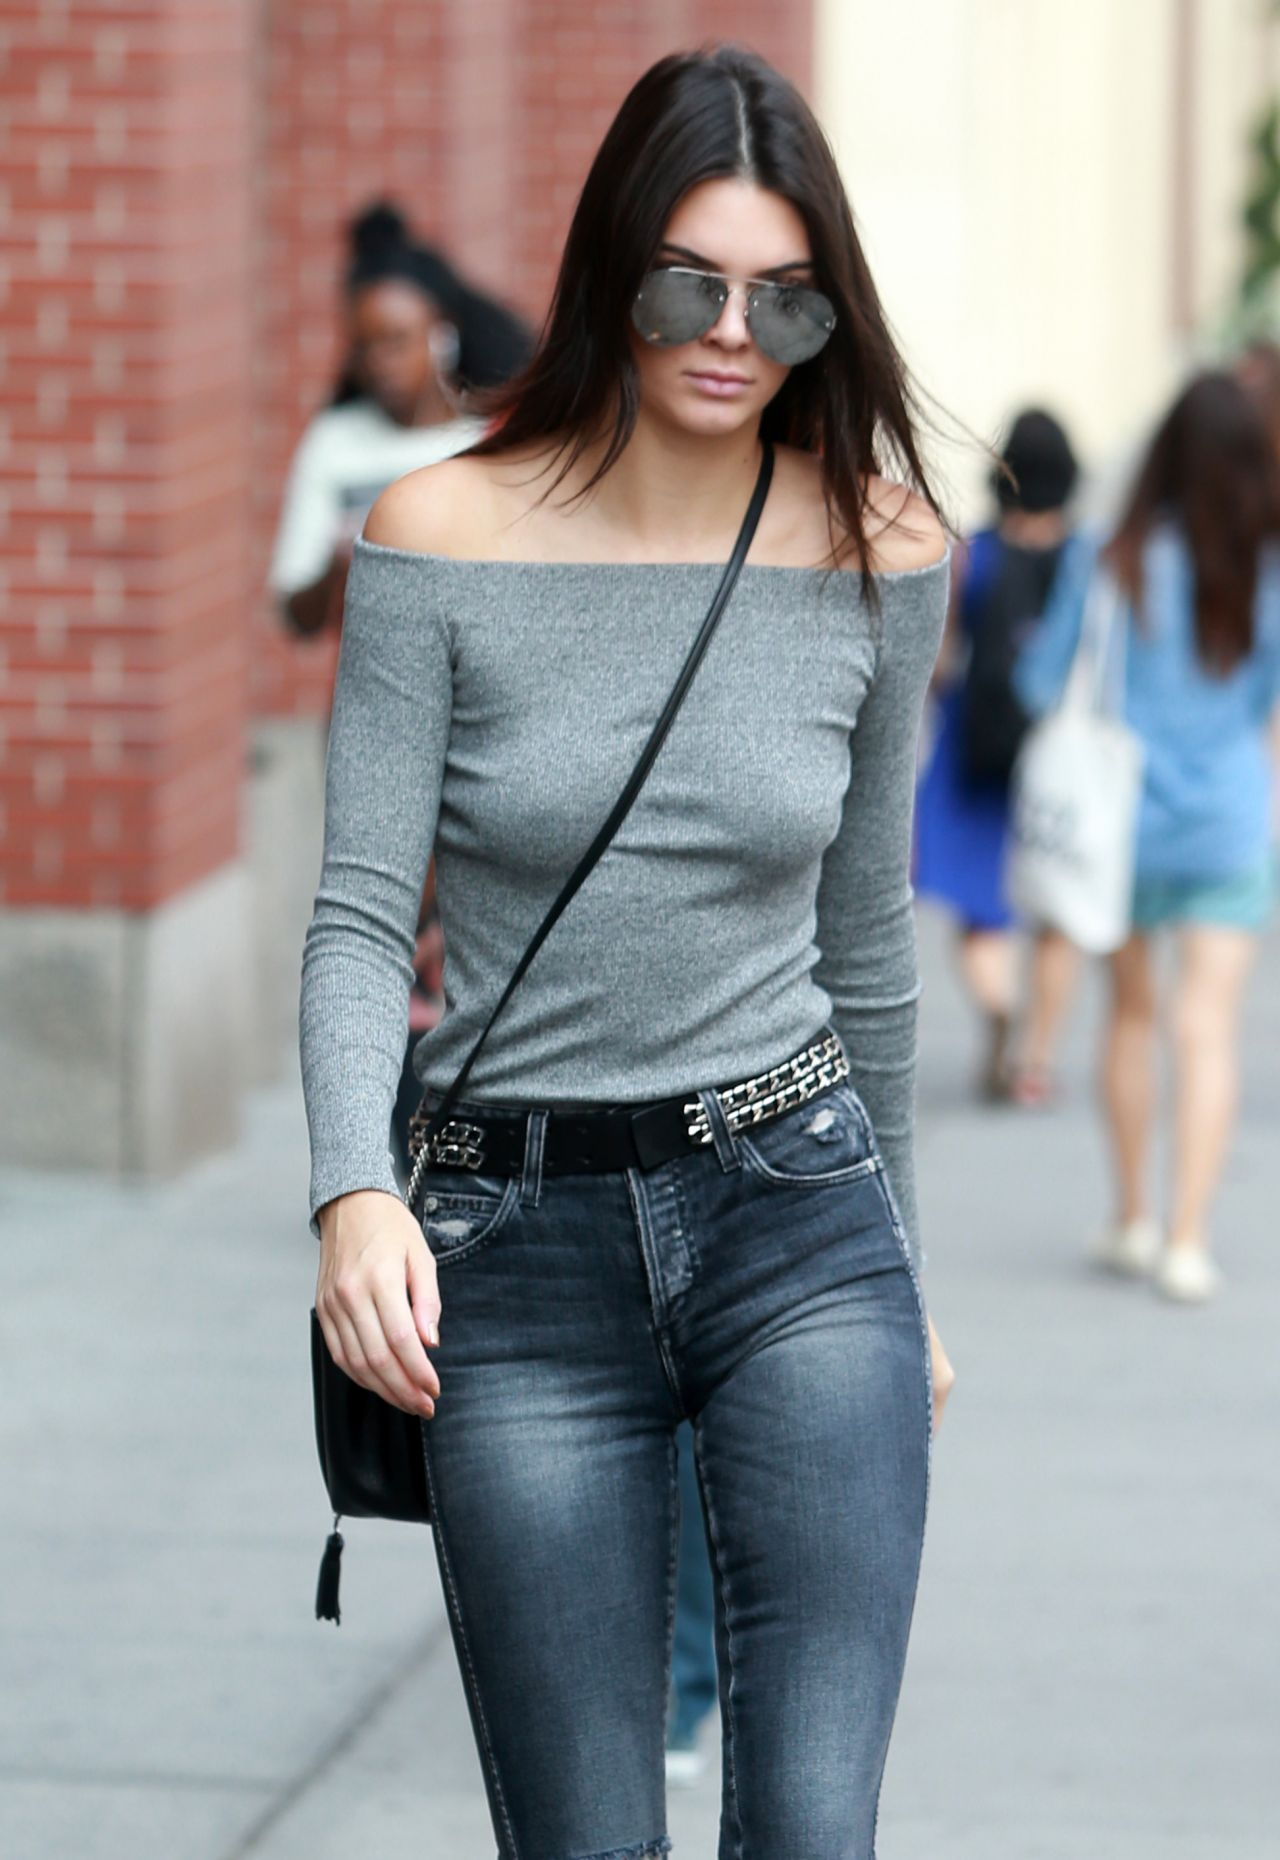 Kendall Jenner Casual Style Leaving Her Apartment In New